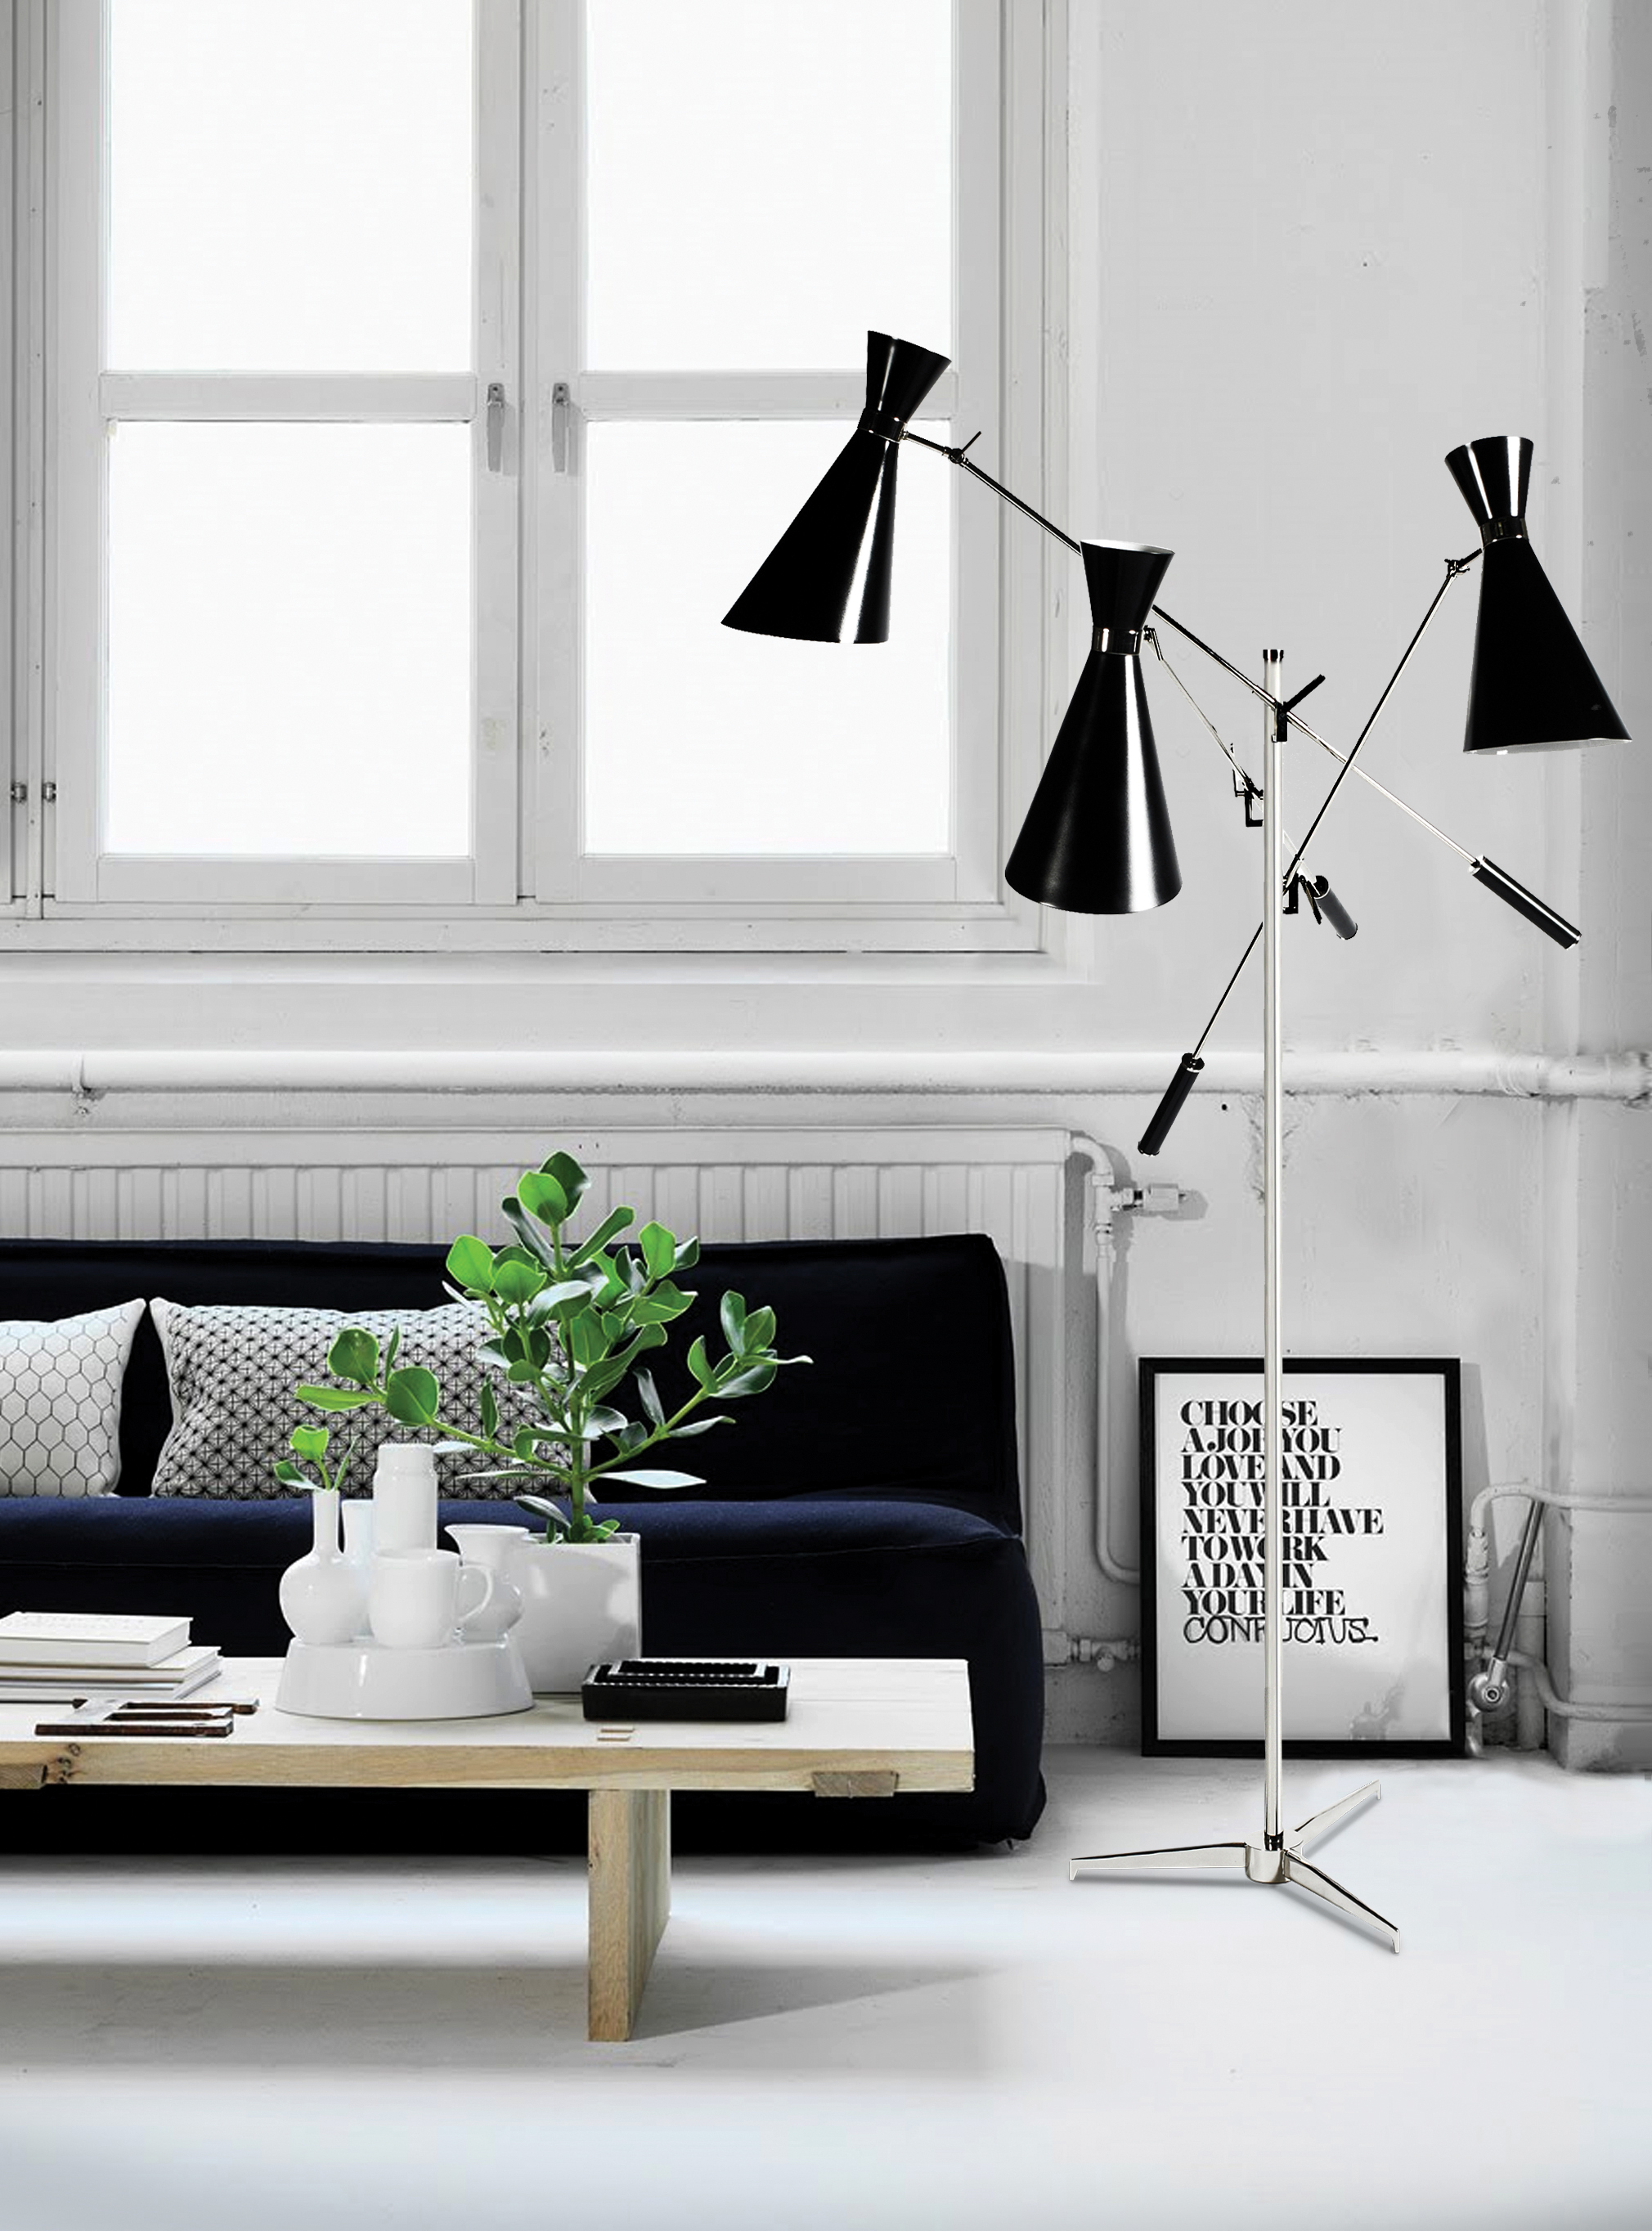 Black Floor Lamps That Will Shine in Your Mid-Century Modern Home 2  Black Floor Lamps That Will Shine in Your Mid-Century Modern Home Black Floor Lamps That Will Shine in Your Mid Century Modern Home 6